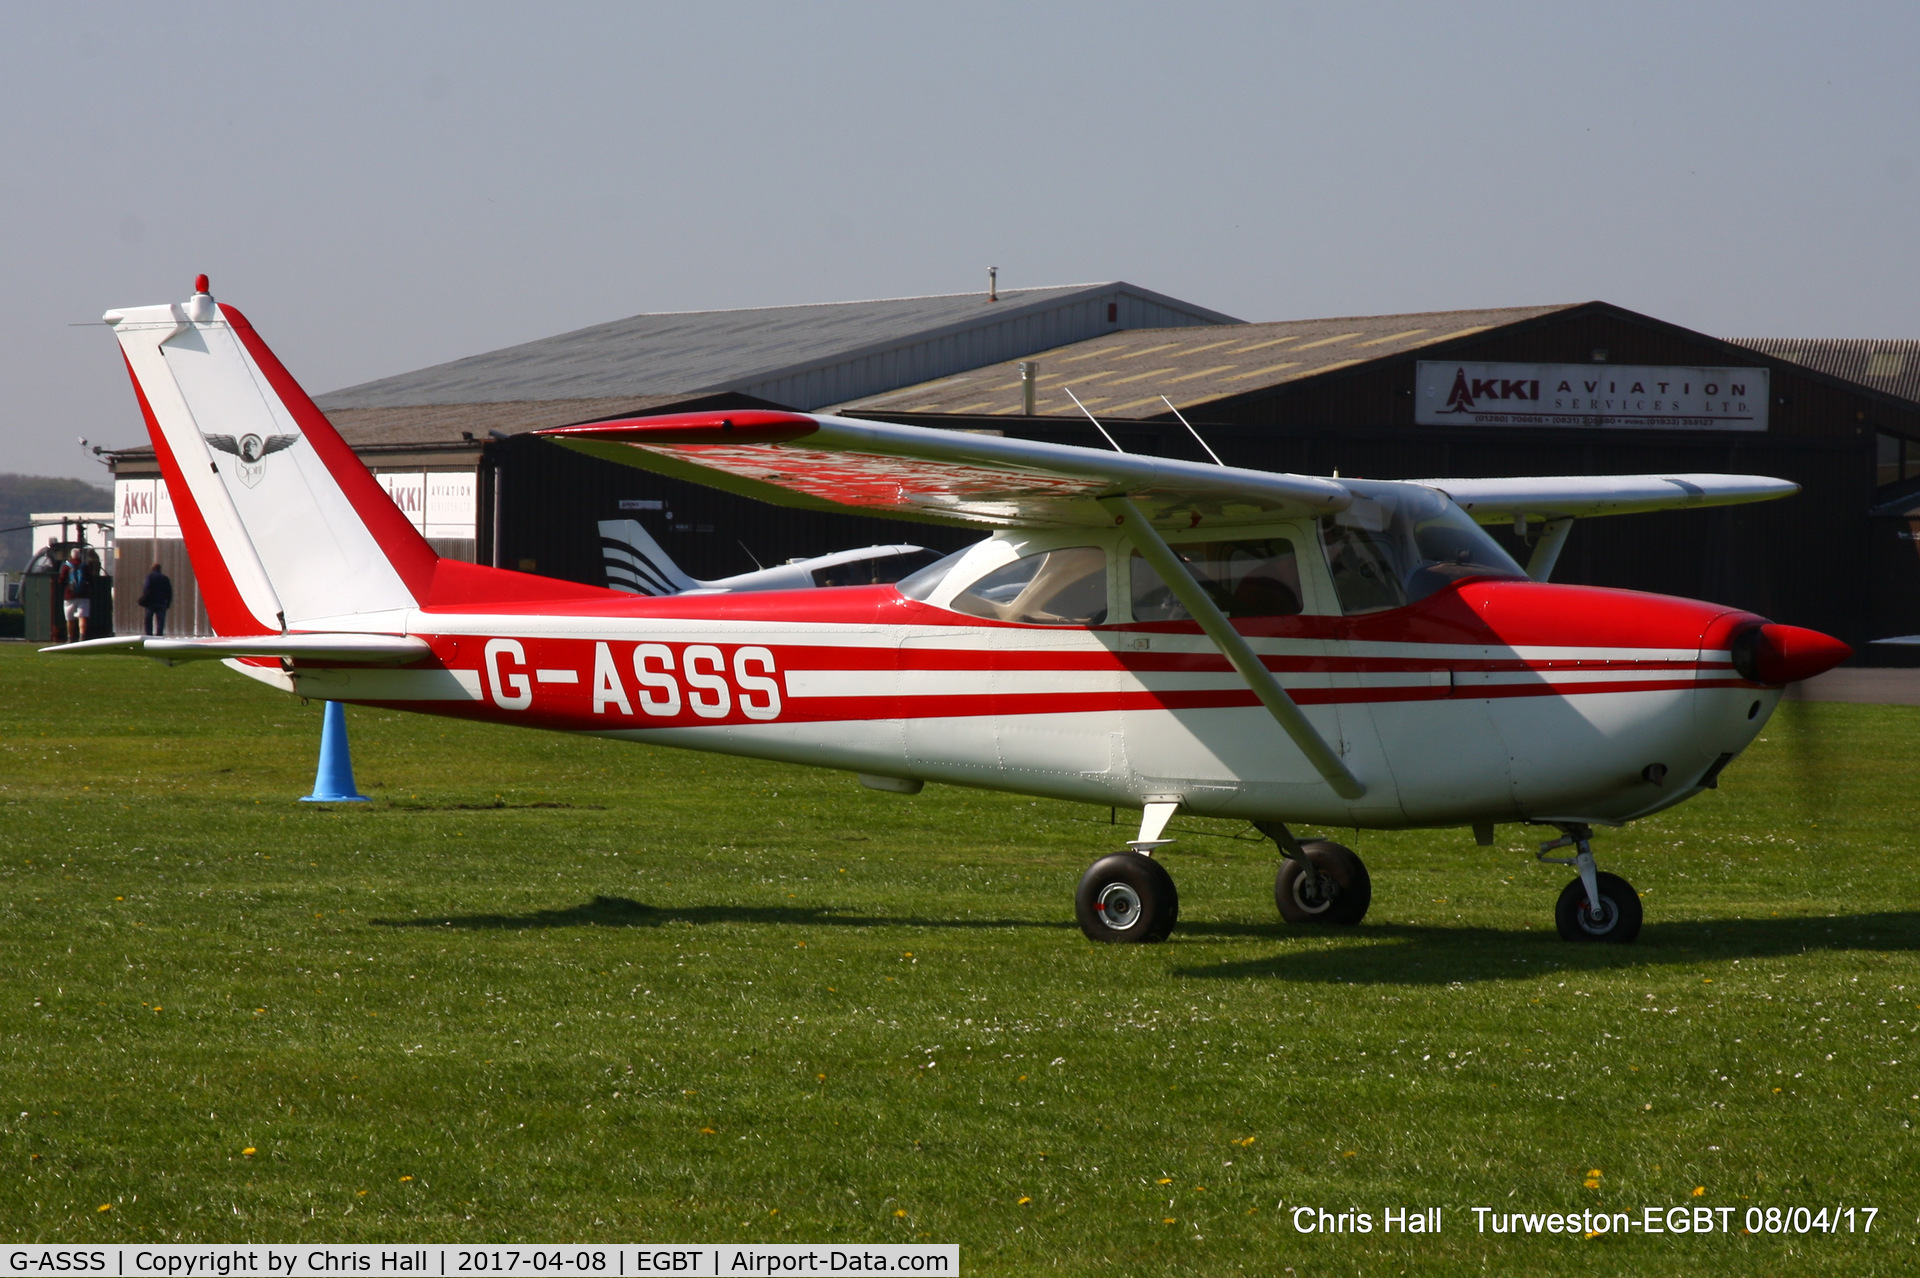 G-ASSS, 1964 Cessna 172E Skyhawk C/N 172-51467, at The Beagle Pup 50th anniversary celebration fly in